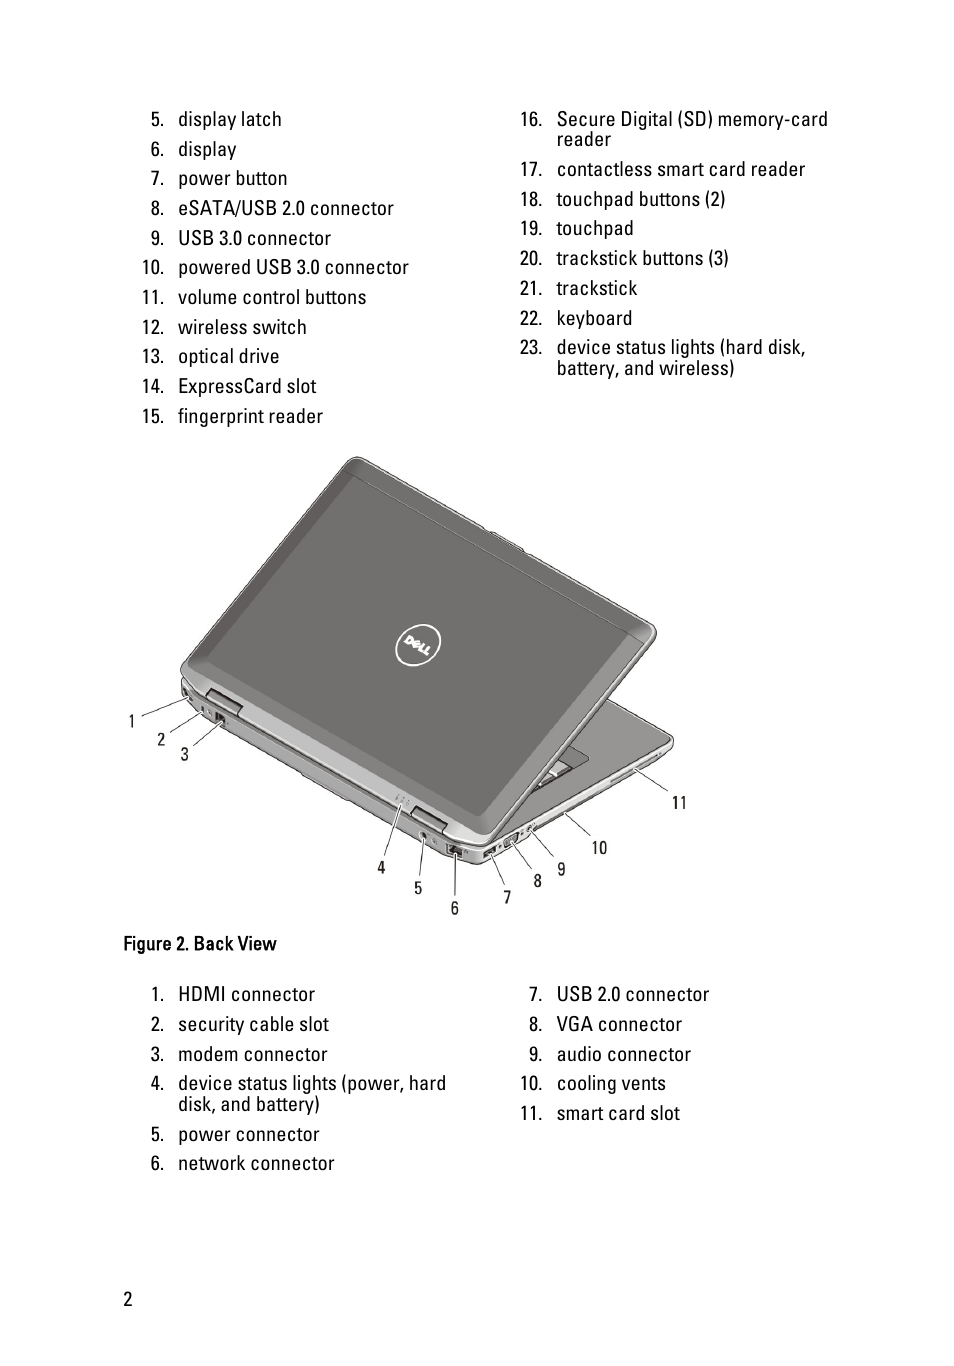 dell latitude e6530 mid 2012 user manual page 2 11 rh manualsdir com dell latitude e6520 manual pdf dell latitude e6520 manual pdf